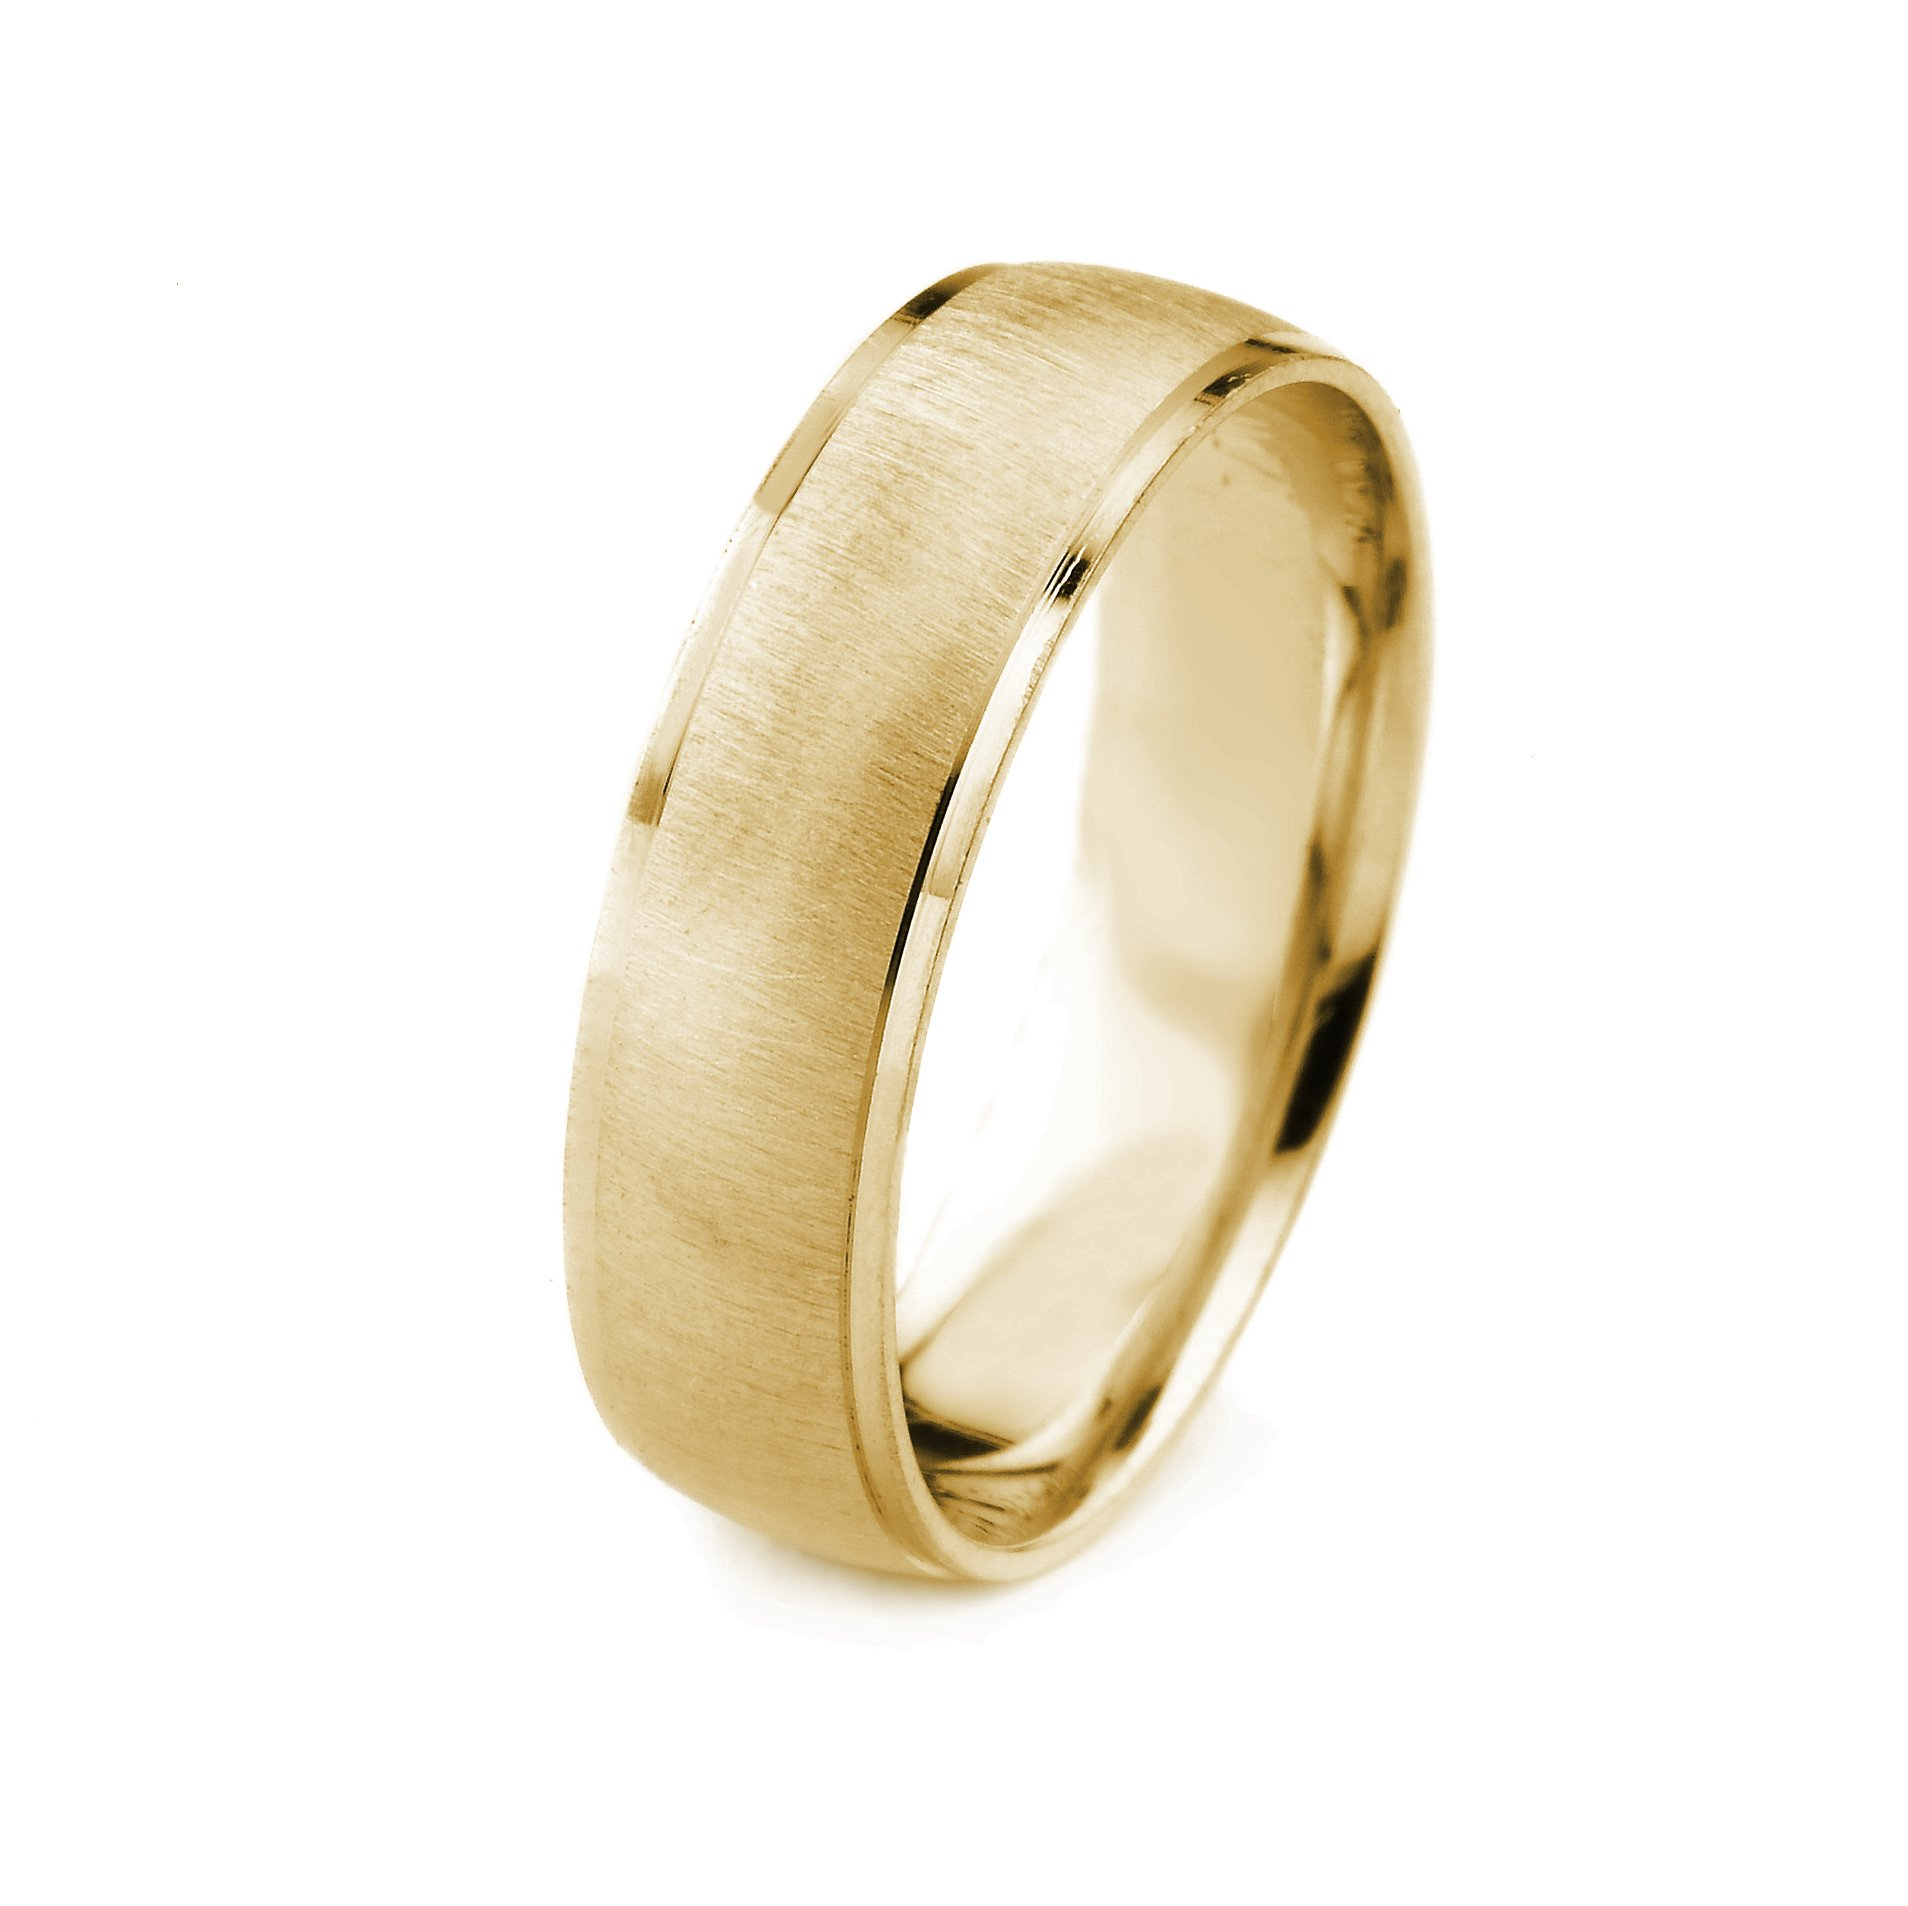 10k Gold Men's Wedding Band with Cross Satin Finish and Cut Polished Edges (6mm)